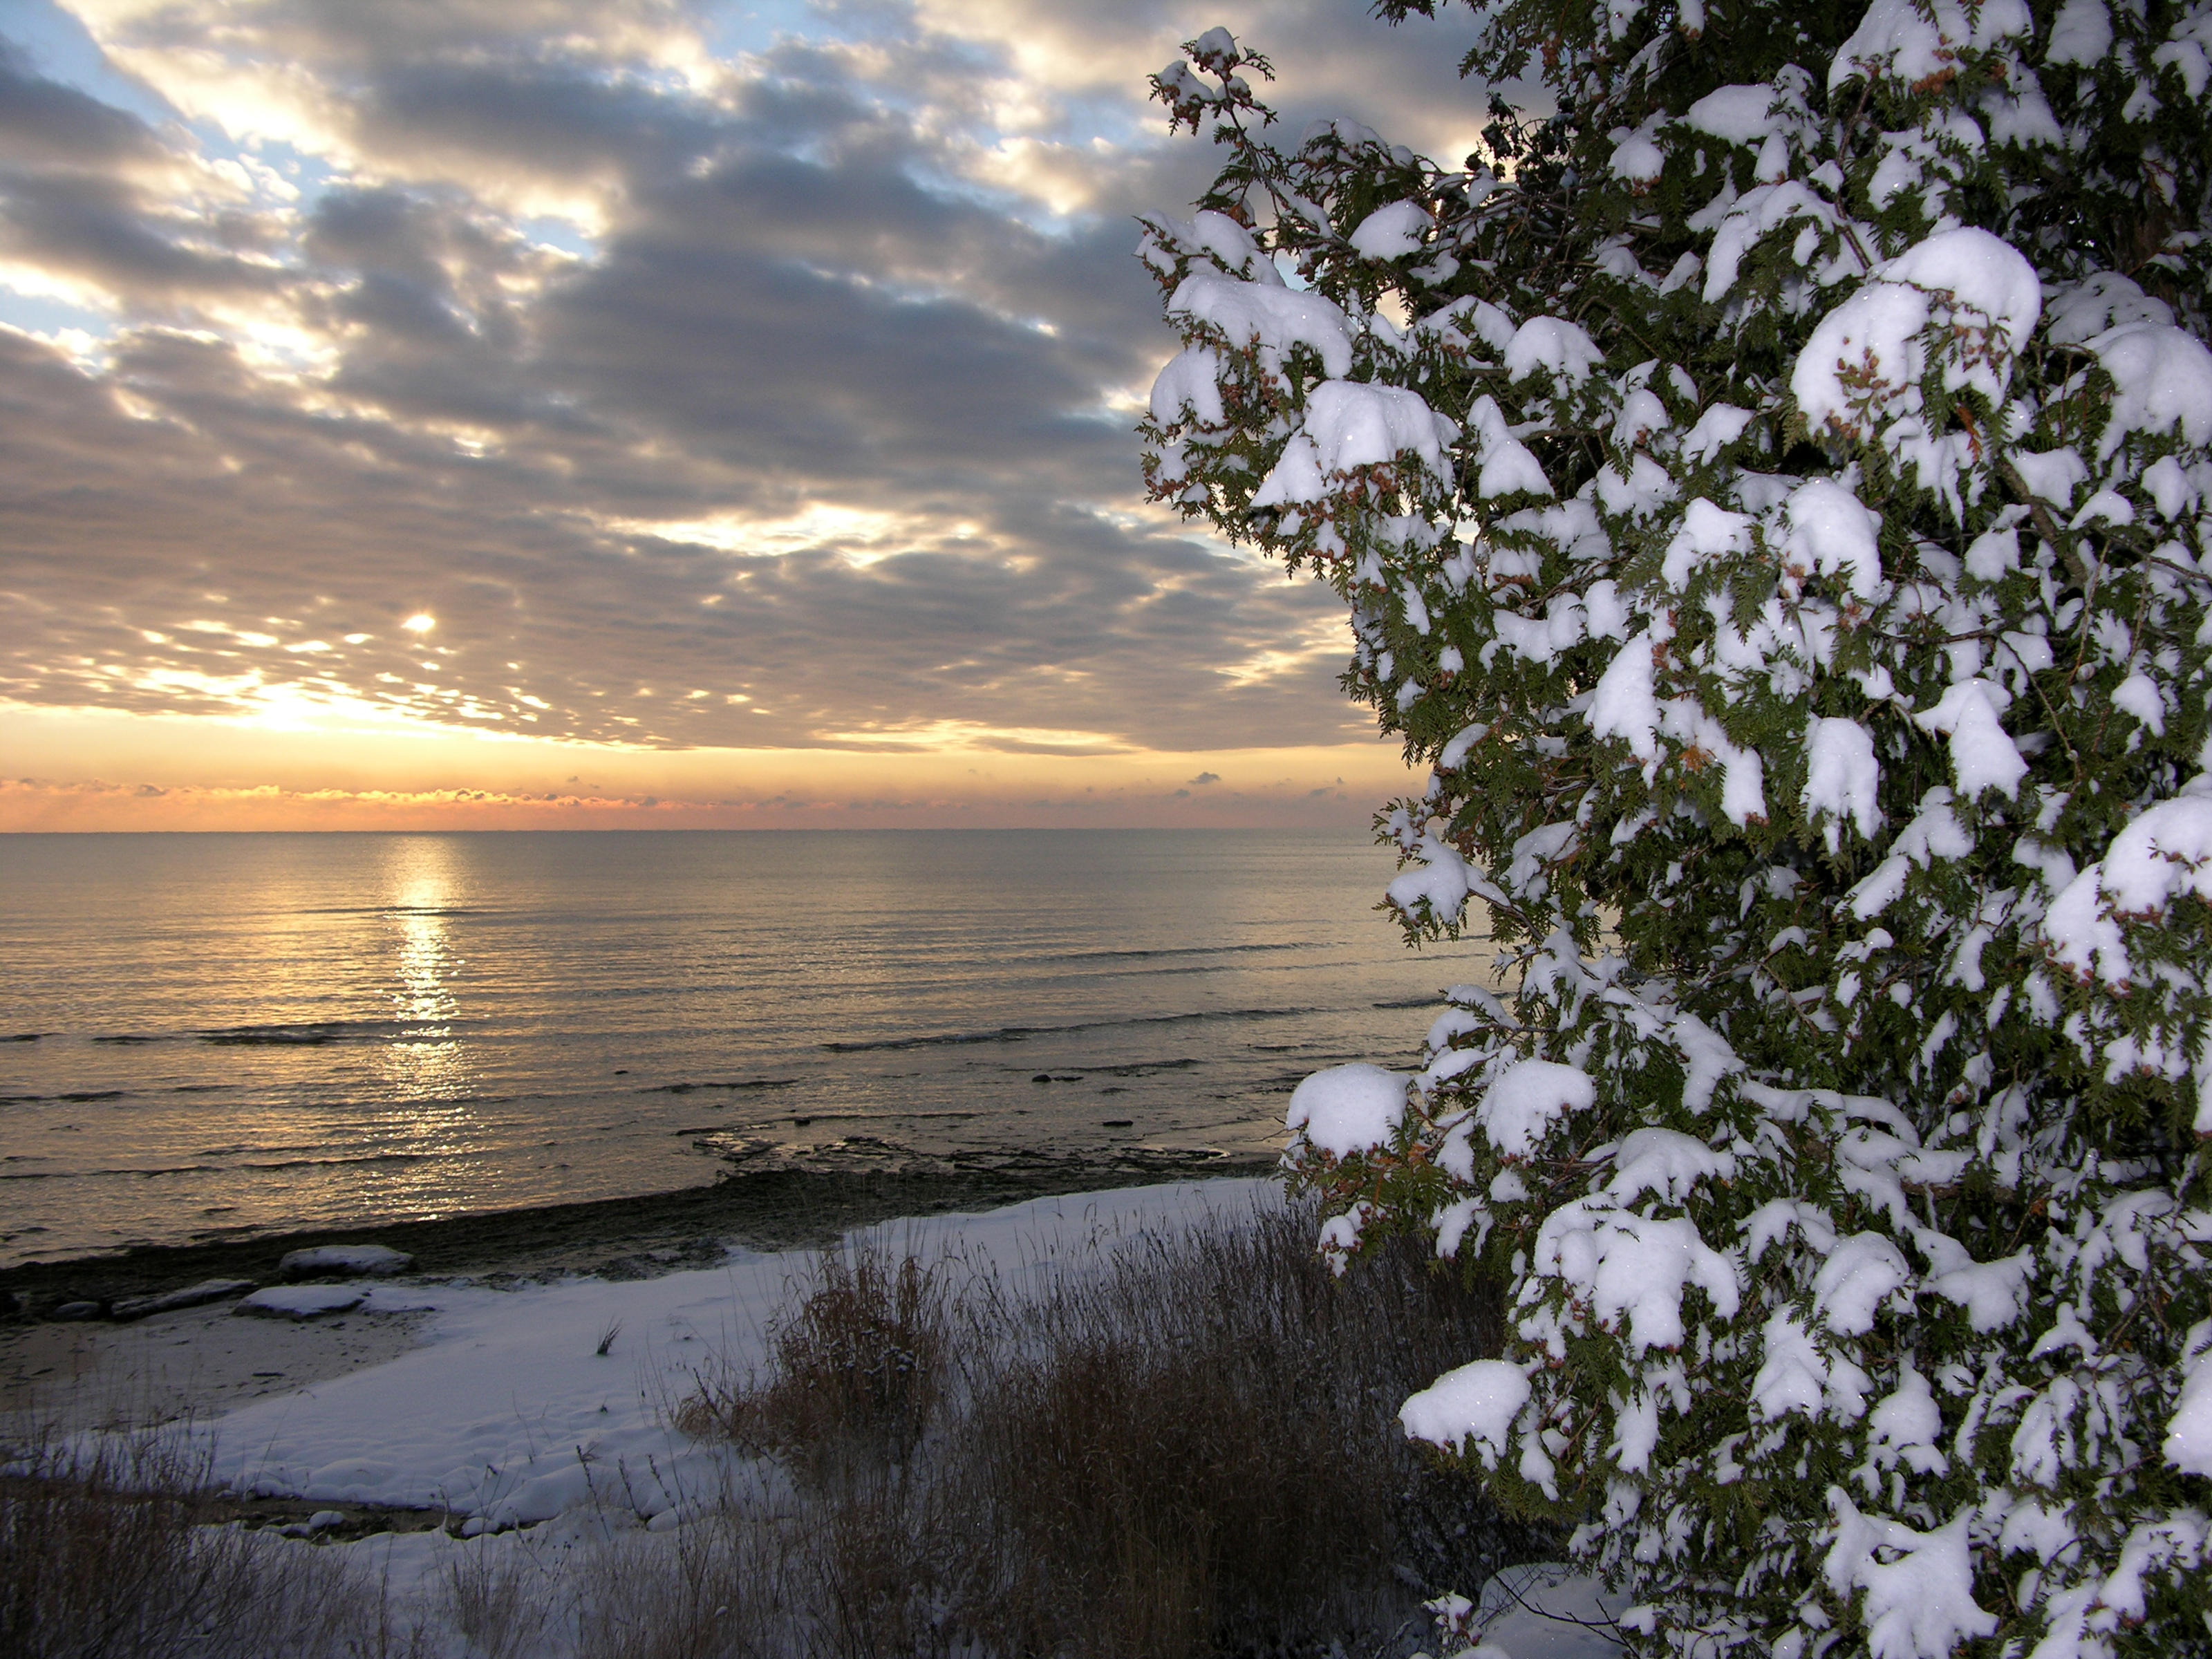 Muted sunset over water, cloudy sky, on right is partial snow-capped evergreen. Courtesy of Door County Visitor Bureau